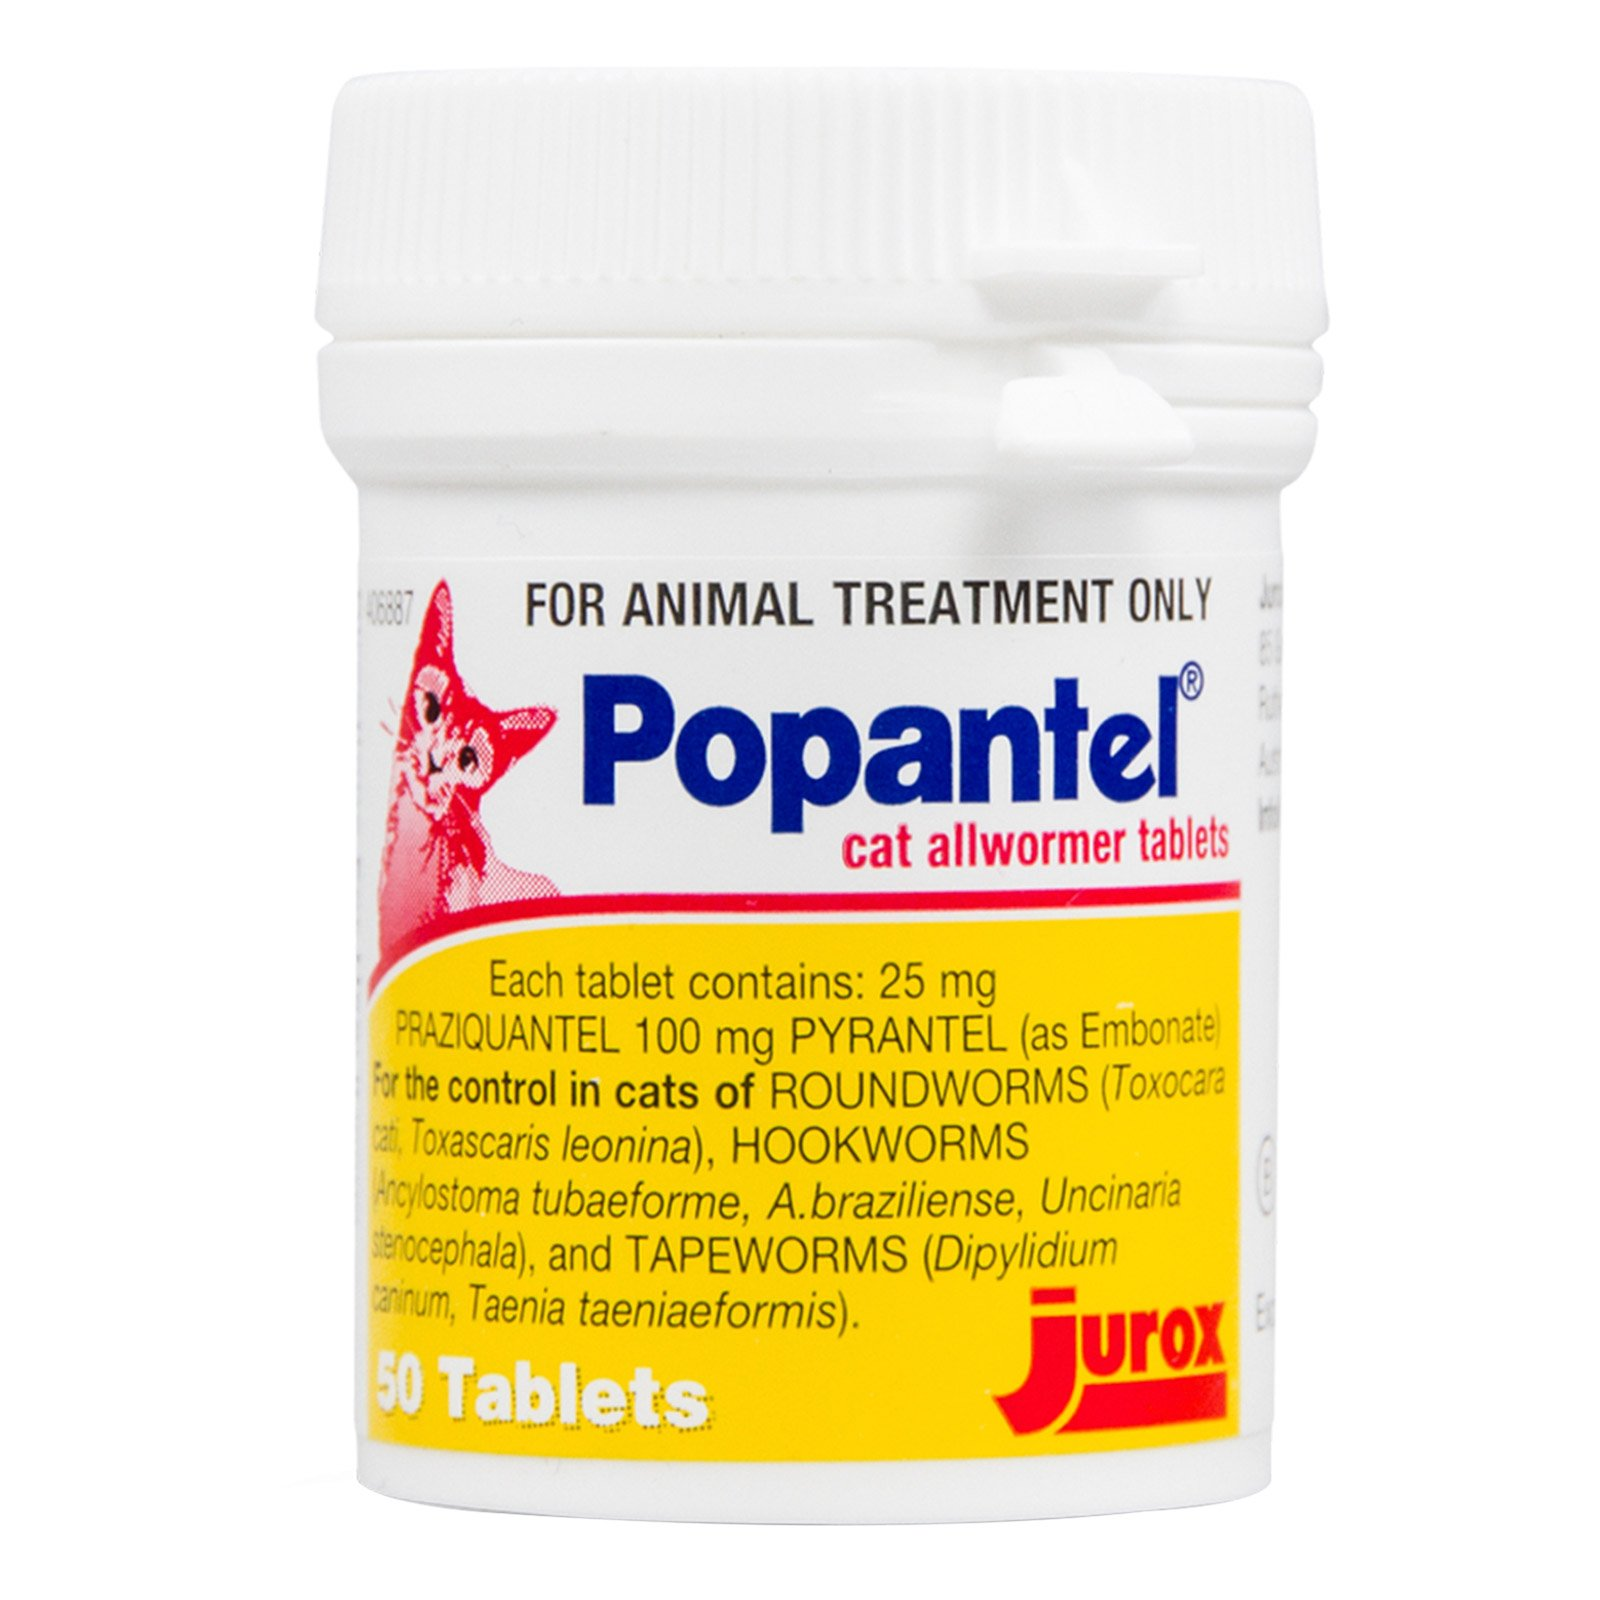 Popantel For Cats 5 Kg